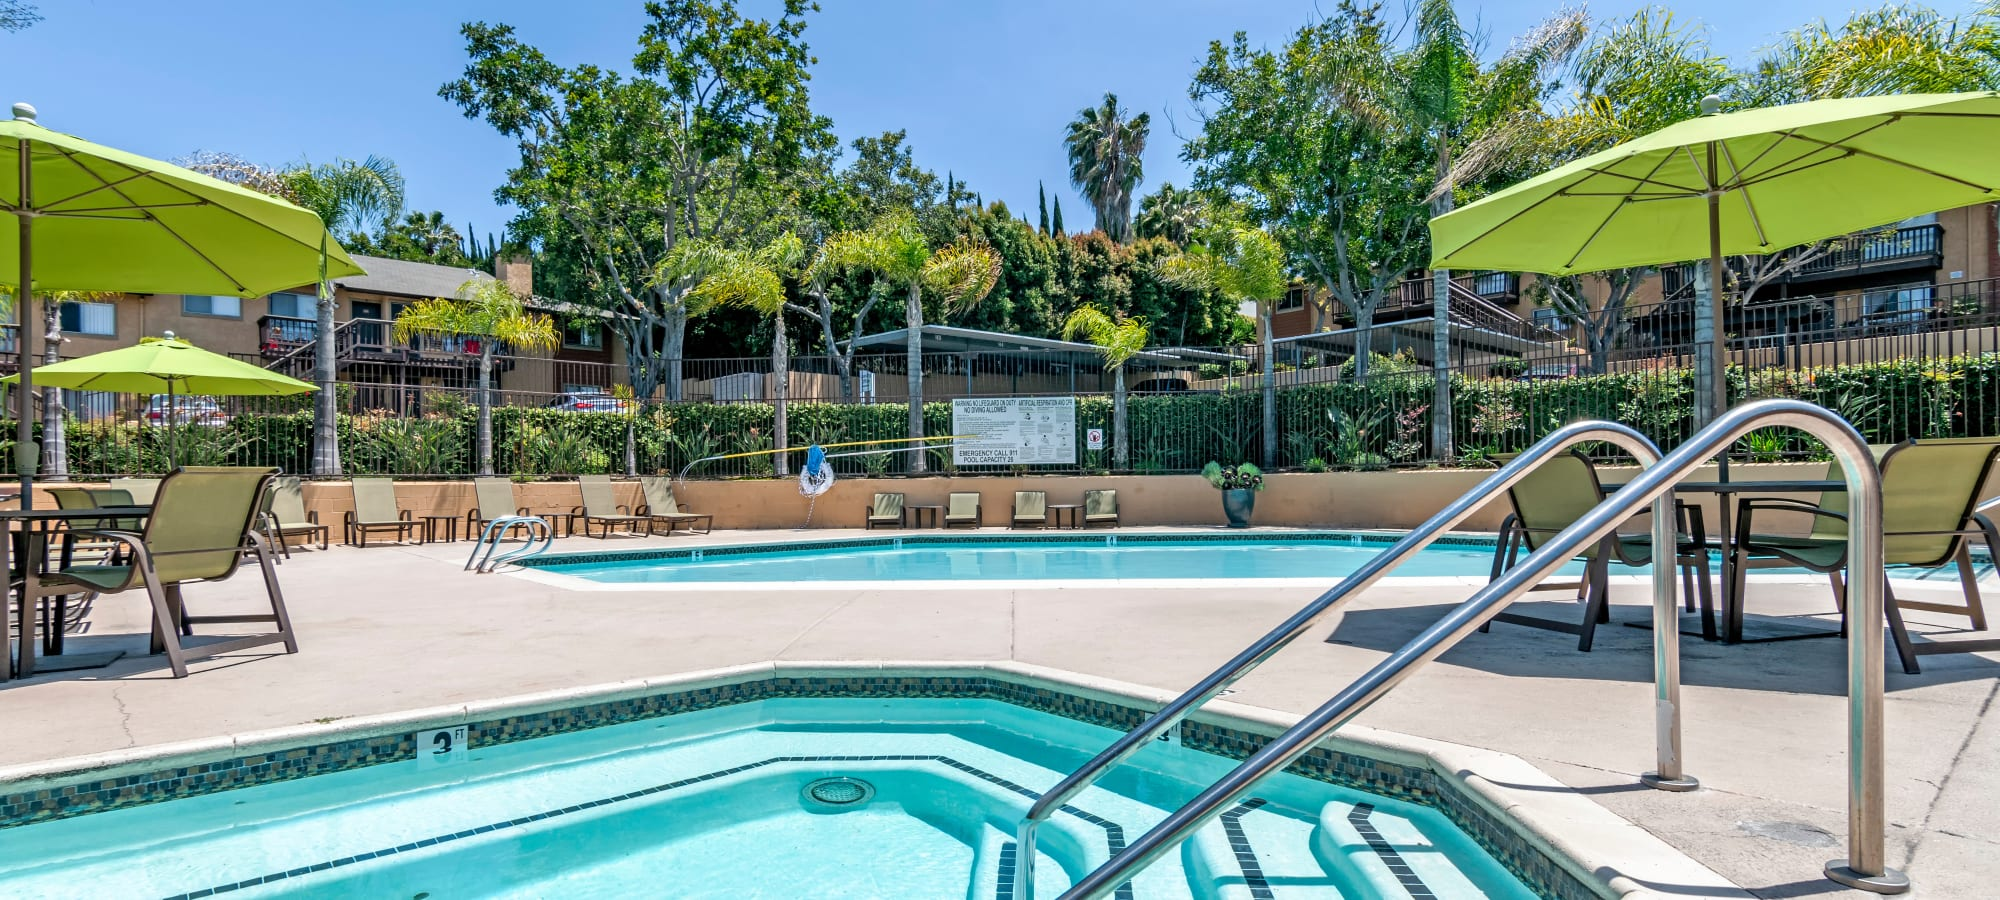 Lemon Grove, California at Hillside Terrace Apartments